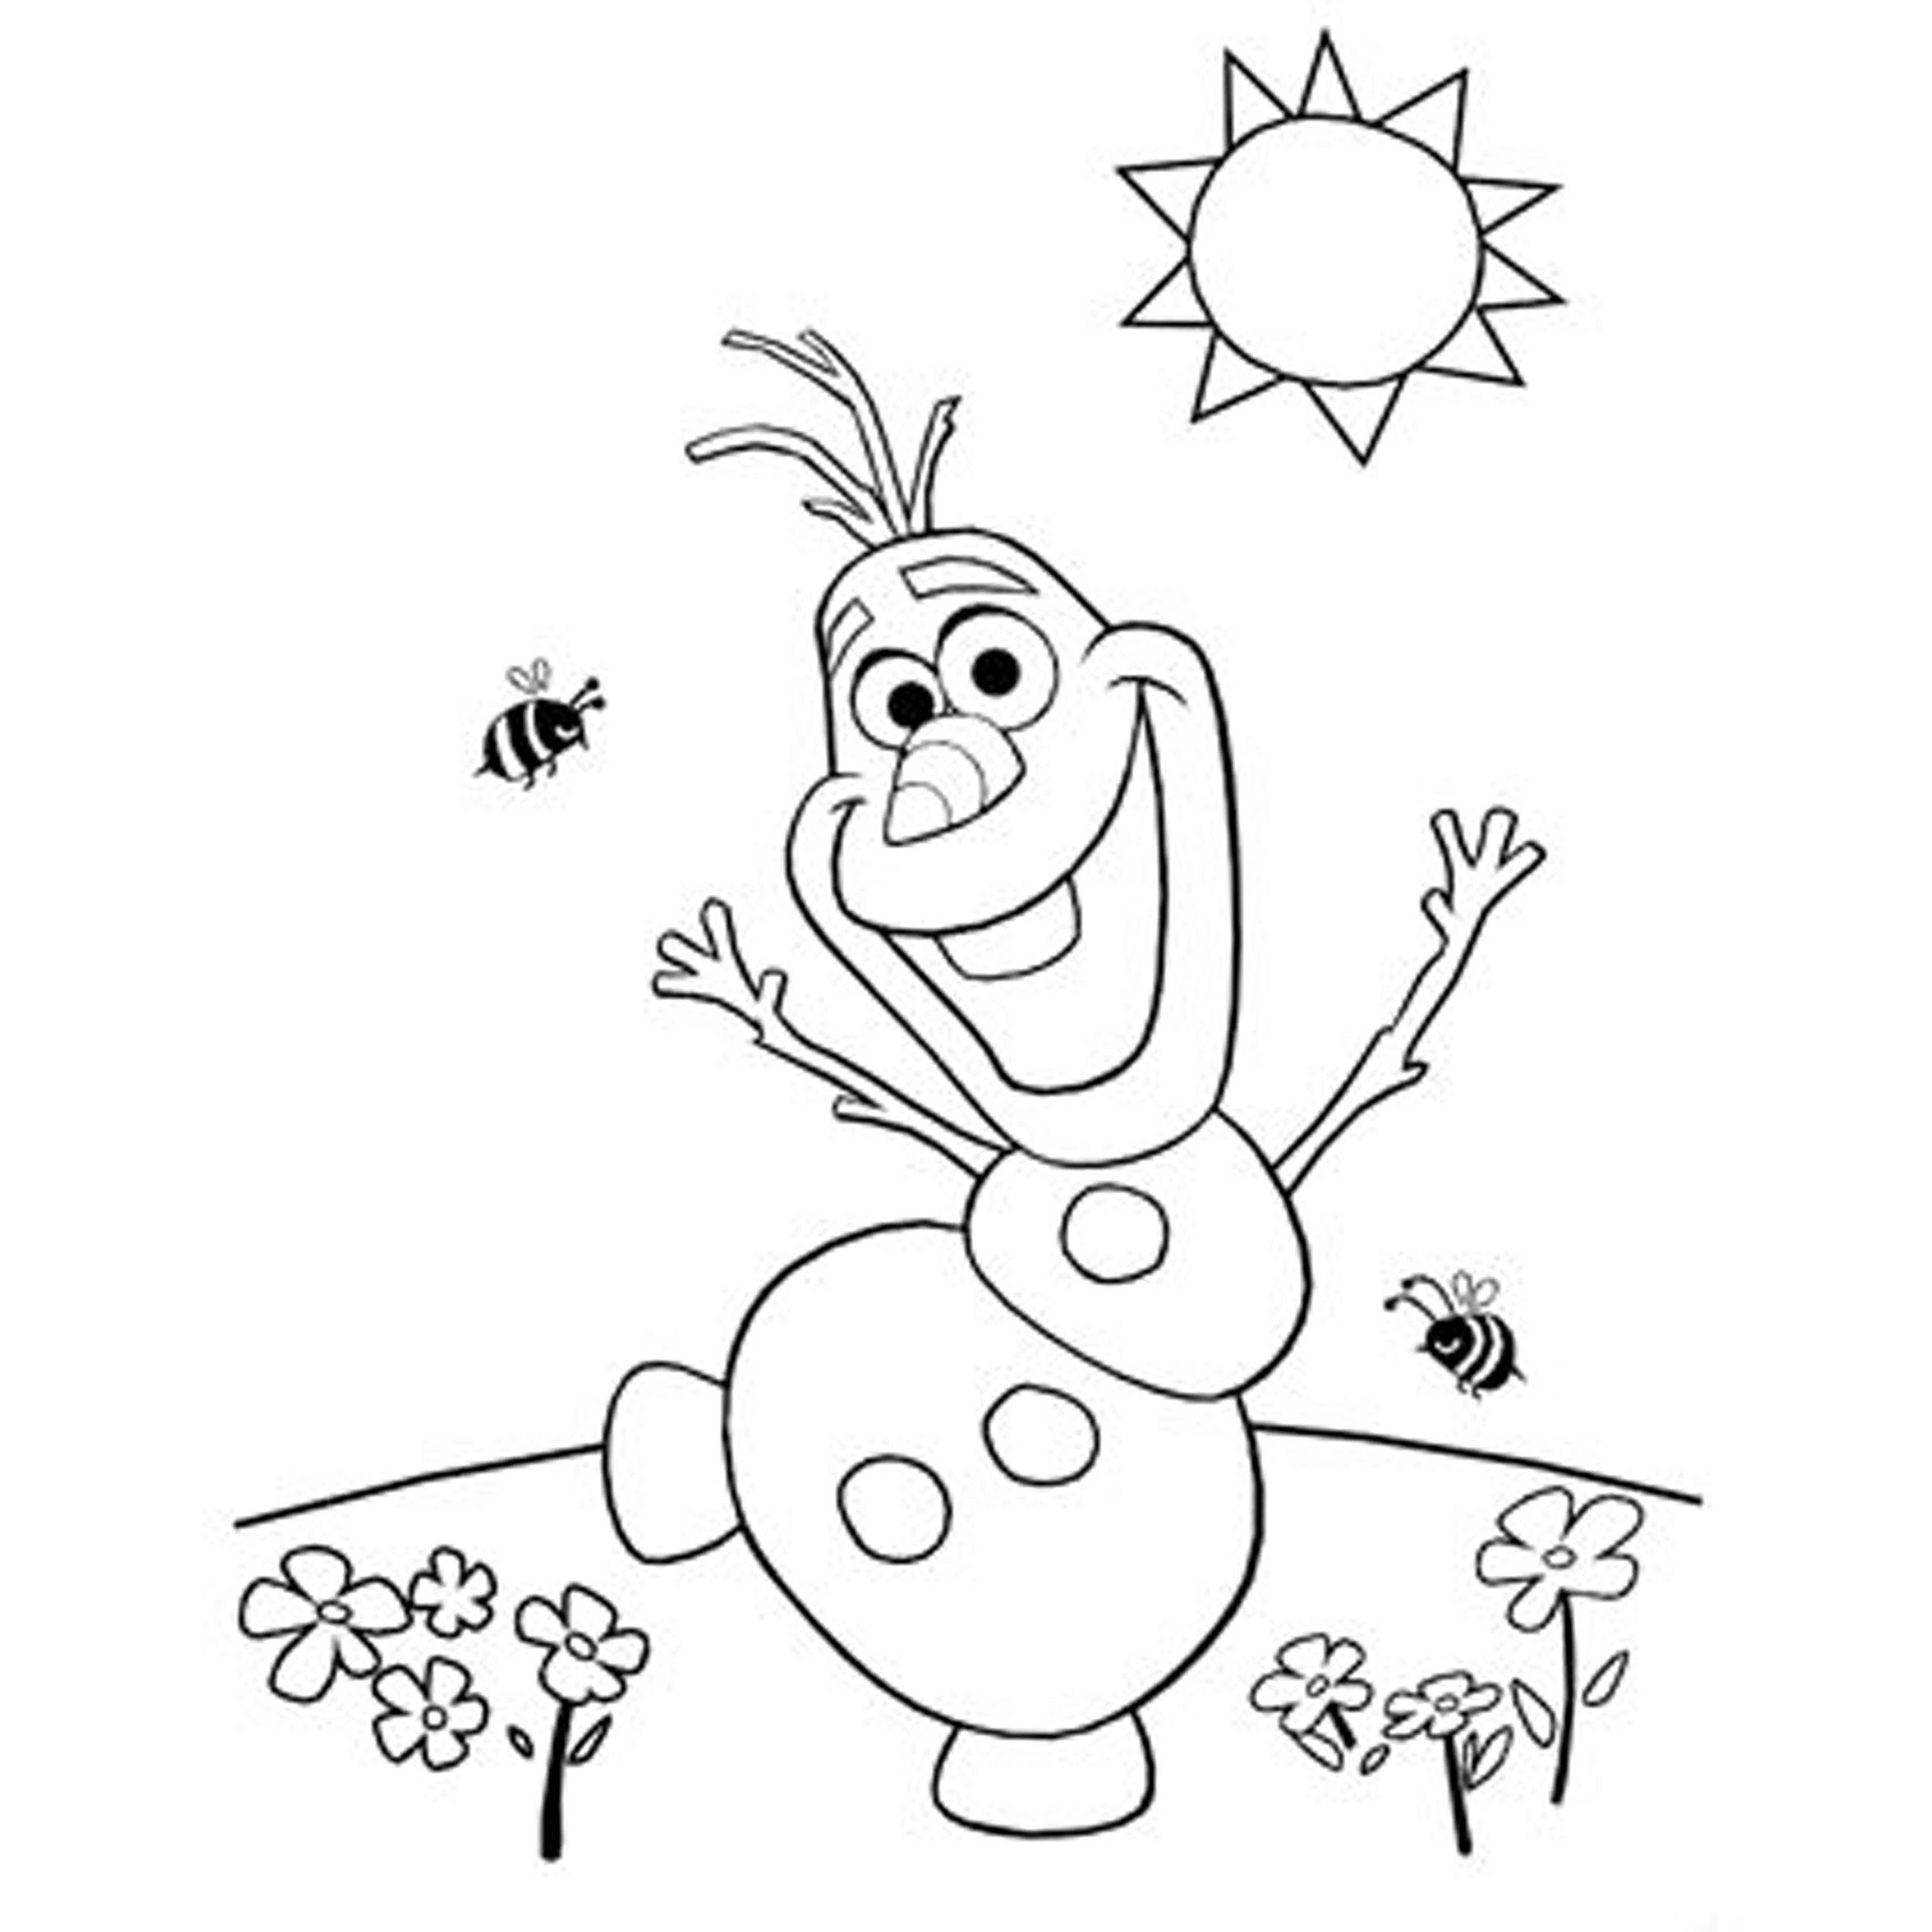 olaf coloring frozens olaf coloring pages best coloring pages for kids olaf coloring 1 4